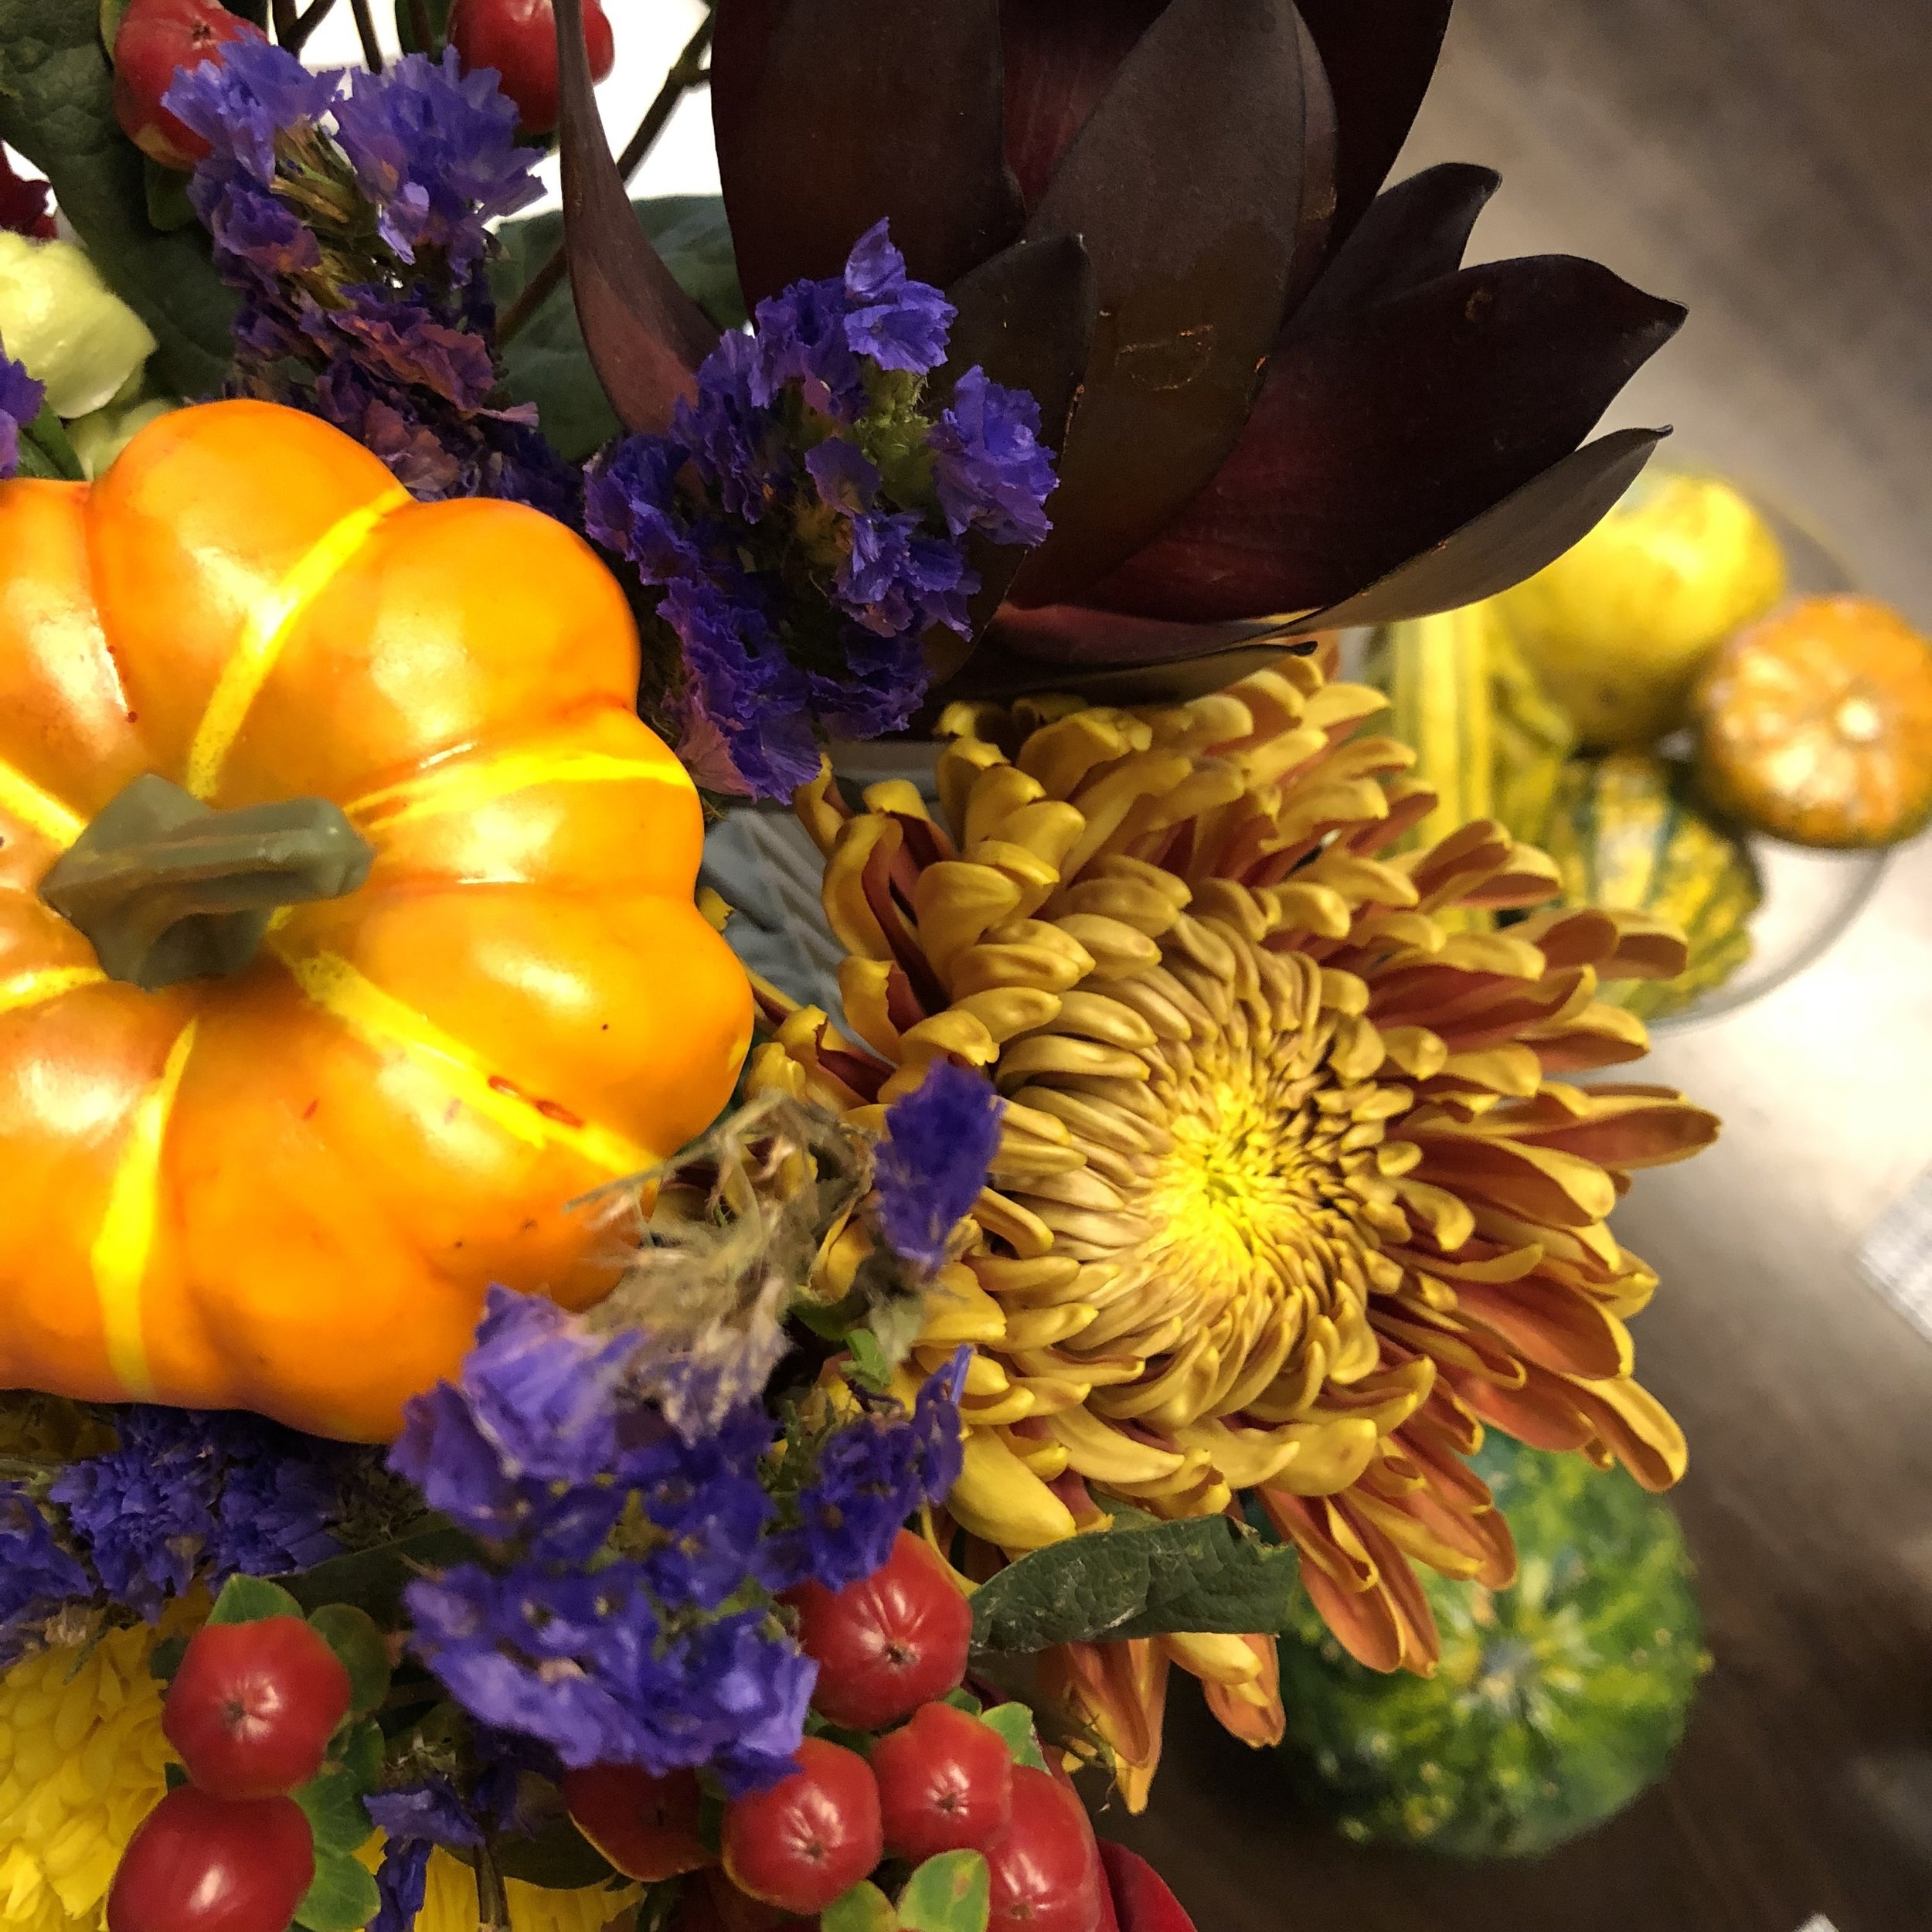 kdelap_thanksgivingflowers